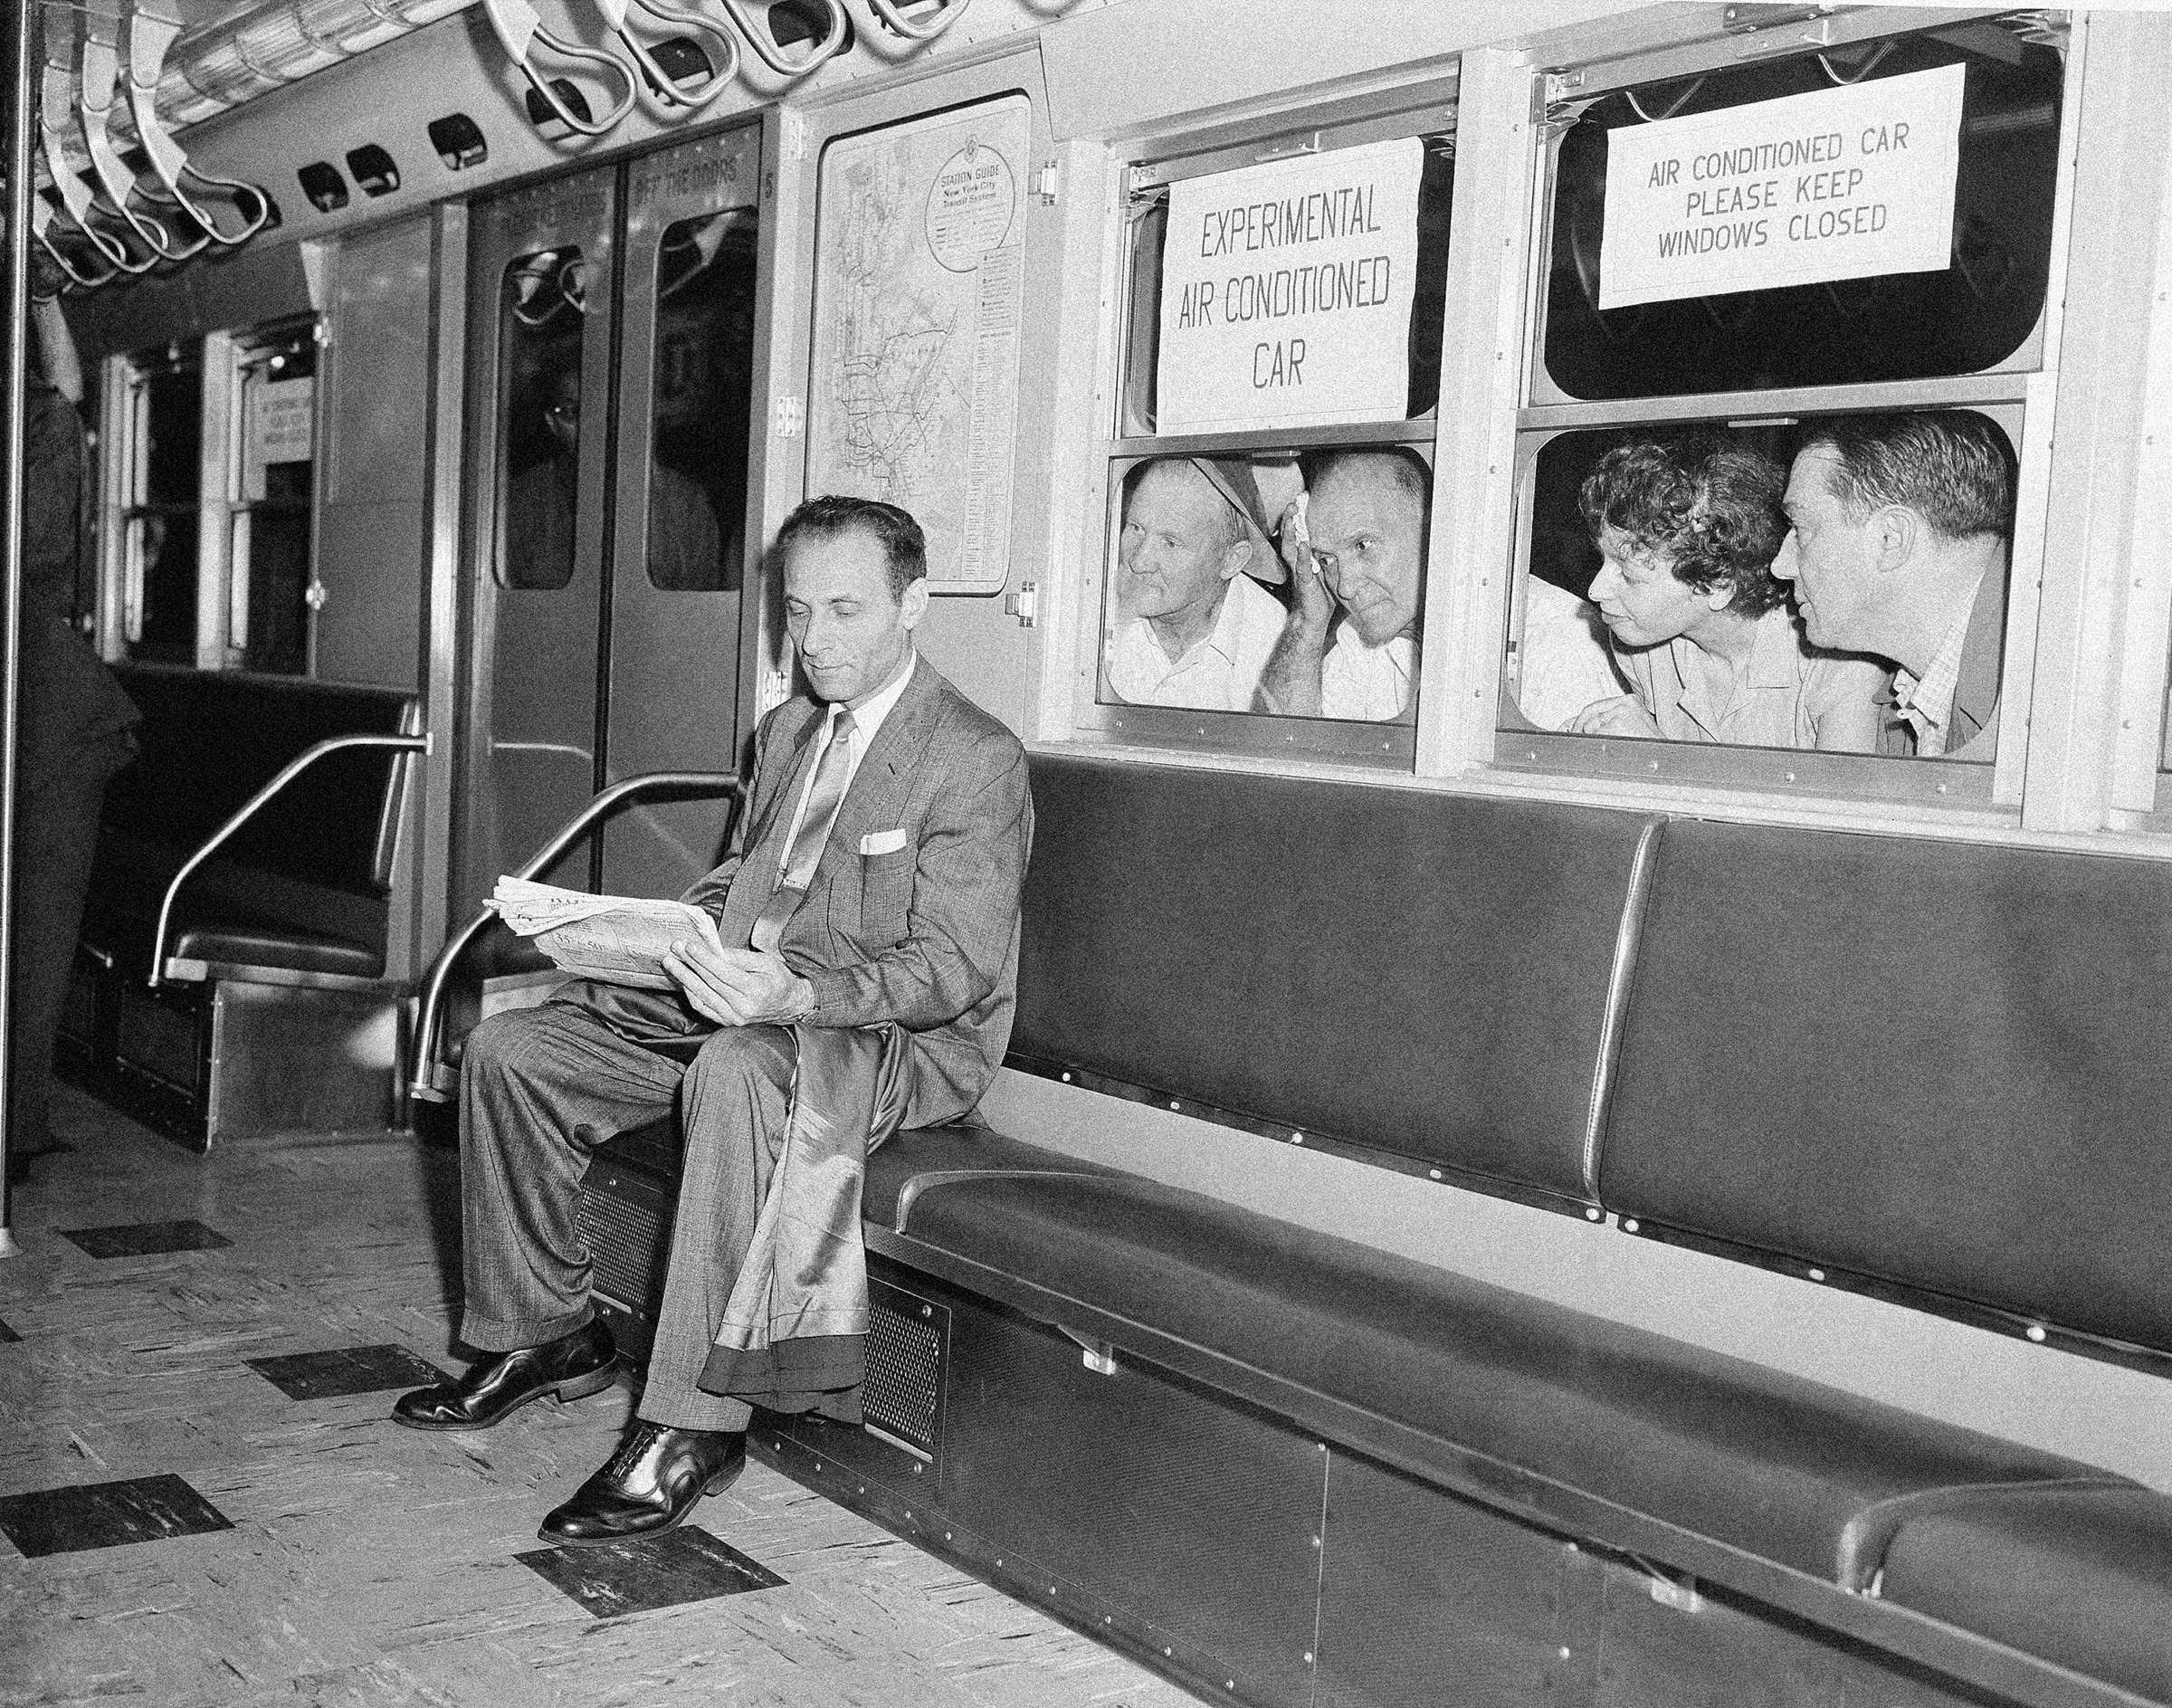 While other subway passengers perspire in the warm and humid underground station, Paul Forman appears cool and comfortable in the experimental air conditioned train, which made its first run in New York City, in July 1956. The test run included six air conditioned cars and two old cars. When the train left Grand Central Station, the temperature was 89 degrees in the old cars, while the new cars registered a temperature of 76.5 degrees.